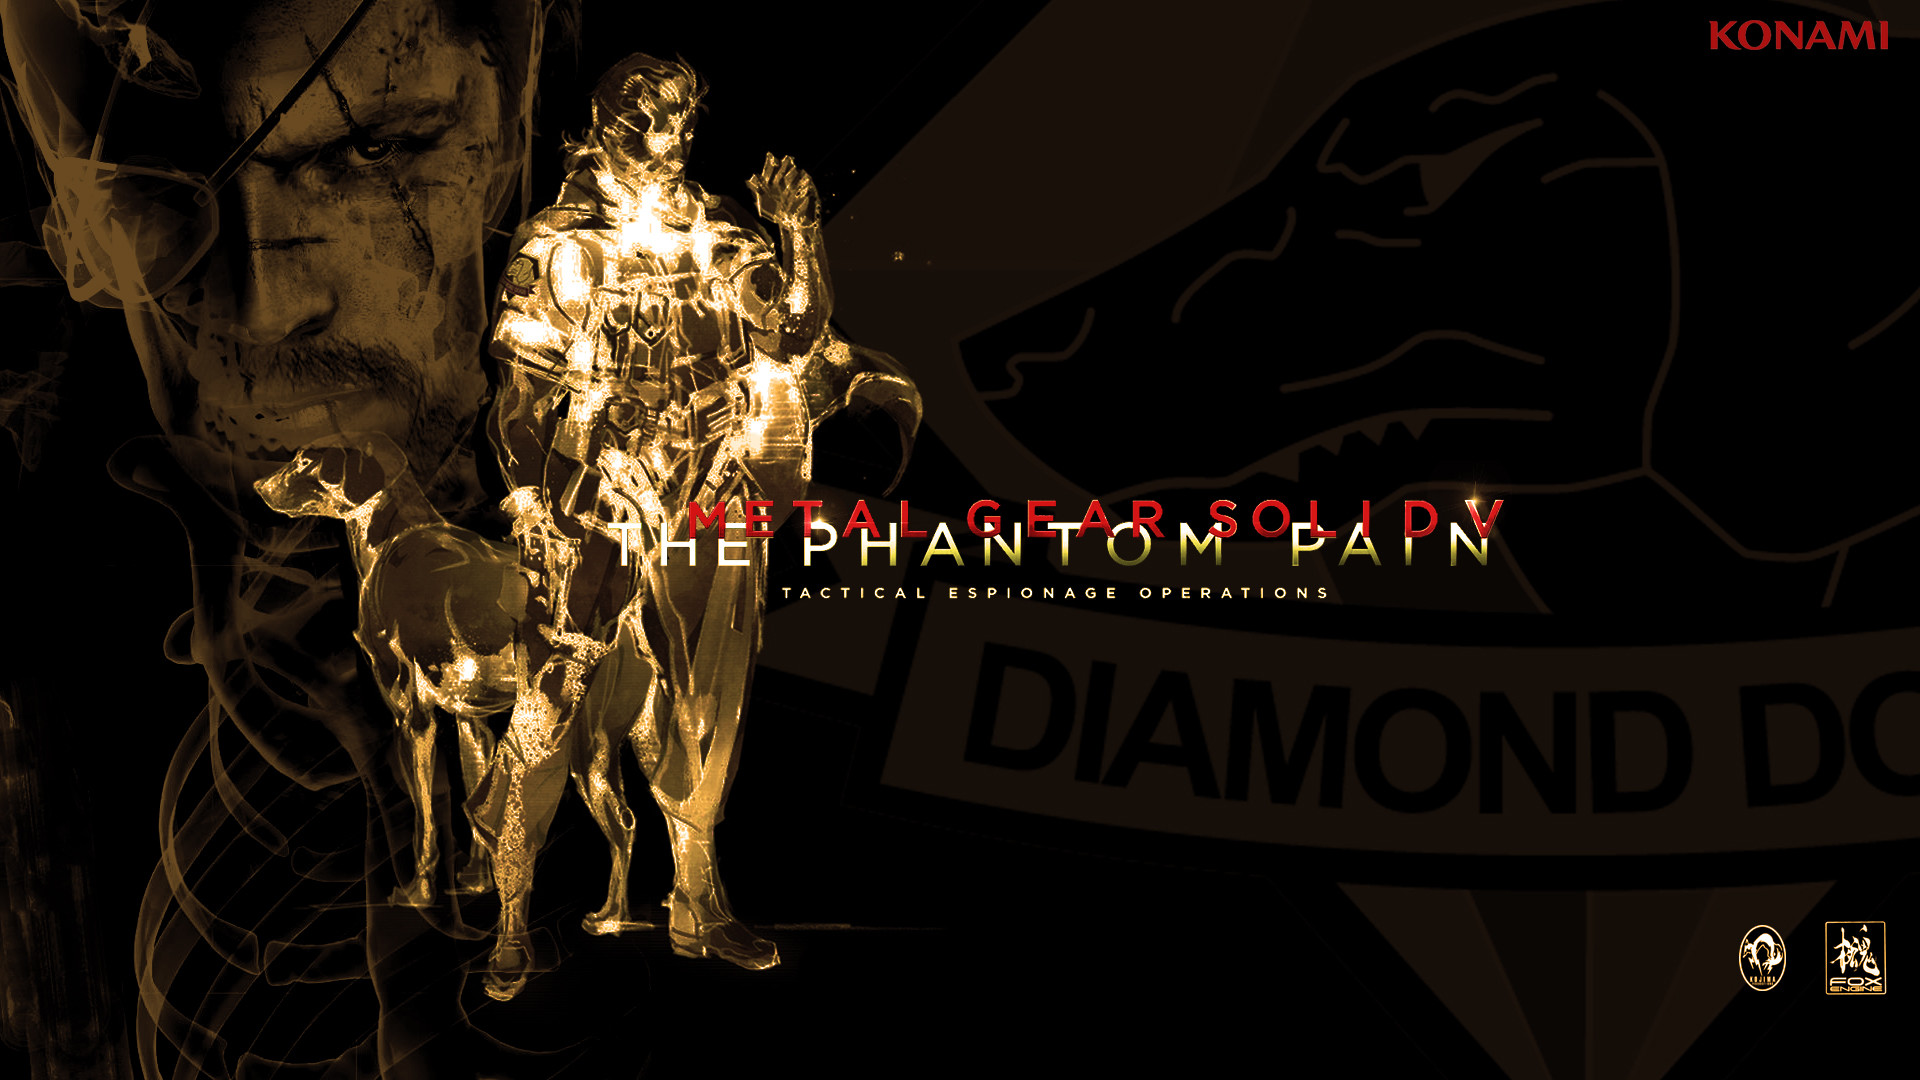 Heres a MGSV The Phantom Pain triple monitor wallpaper I made   Adorable  Wallpapers   Pinterest   Monitor, Wallpaper and Metal gear solid